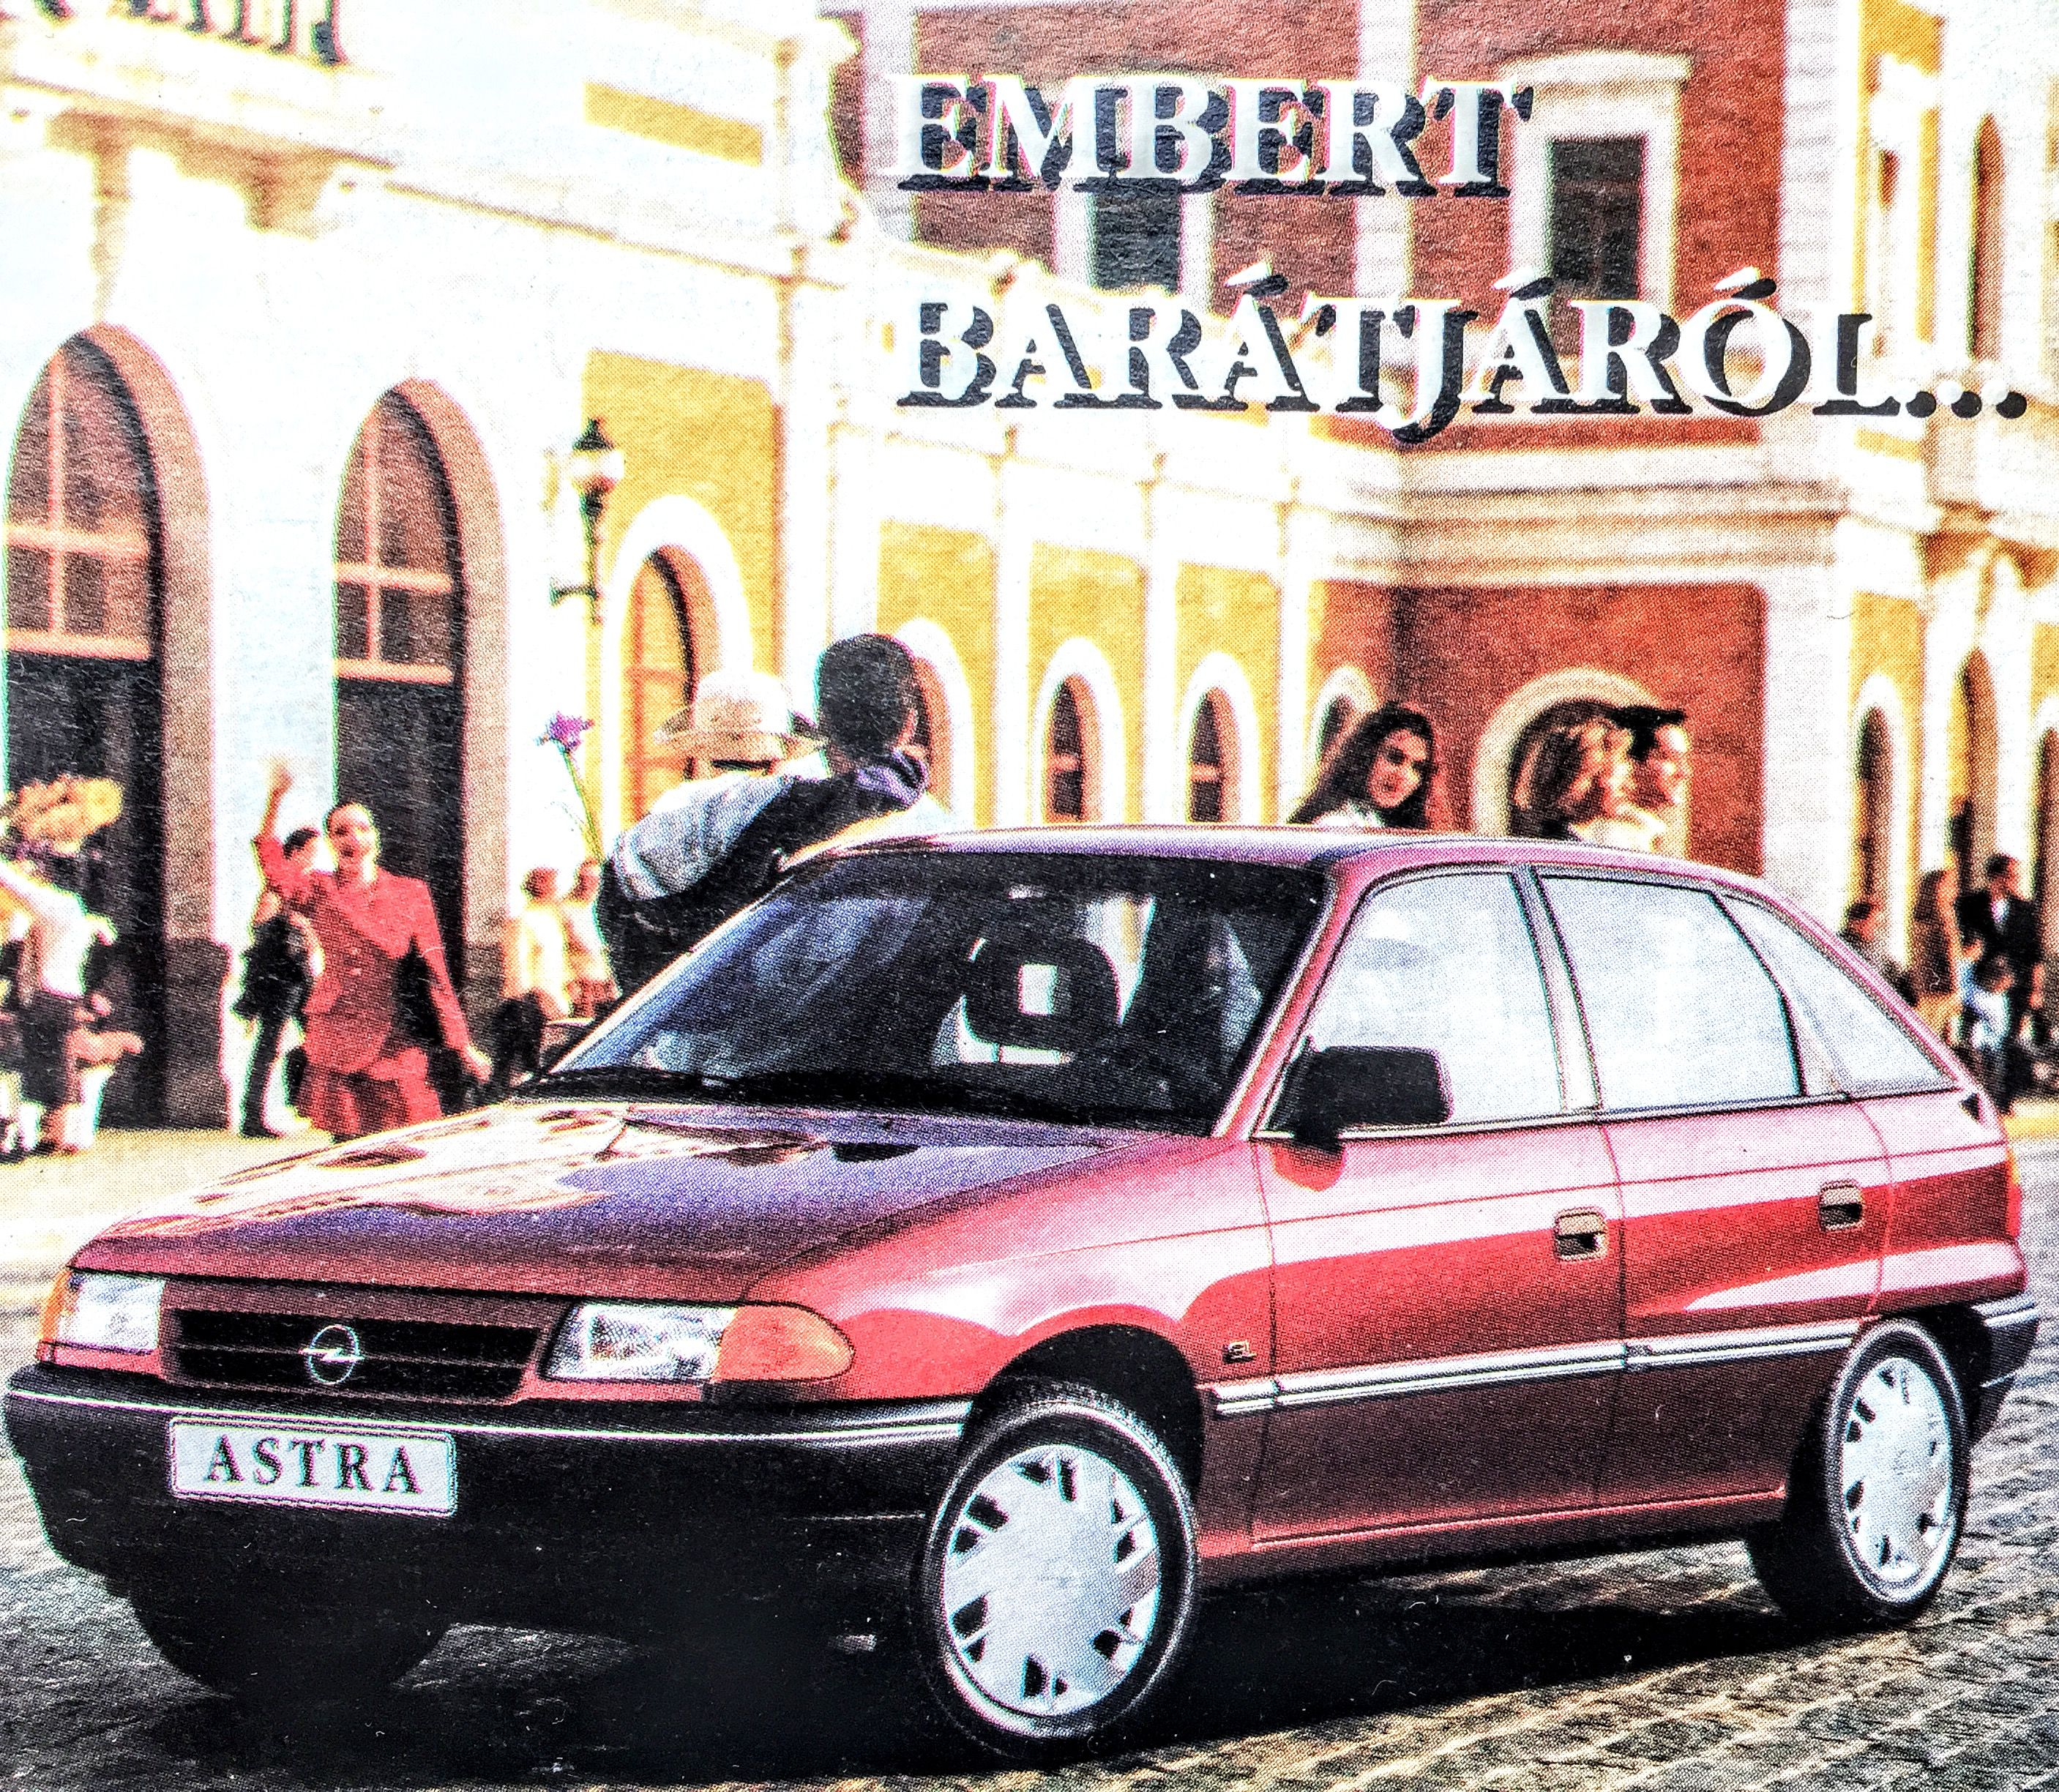 Opel Astra Early 90 S Advertisement From Hungary In March 1992 Production Of F Series Astra Was Started In Hungarian Plant Szentgotthárd